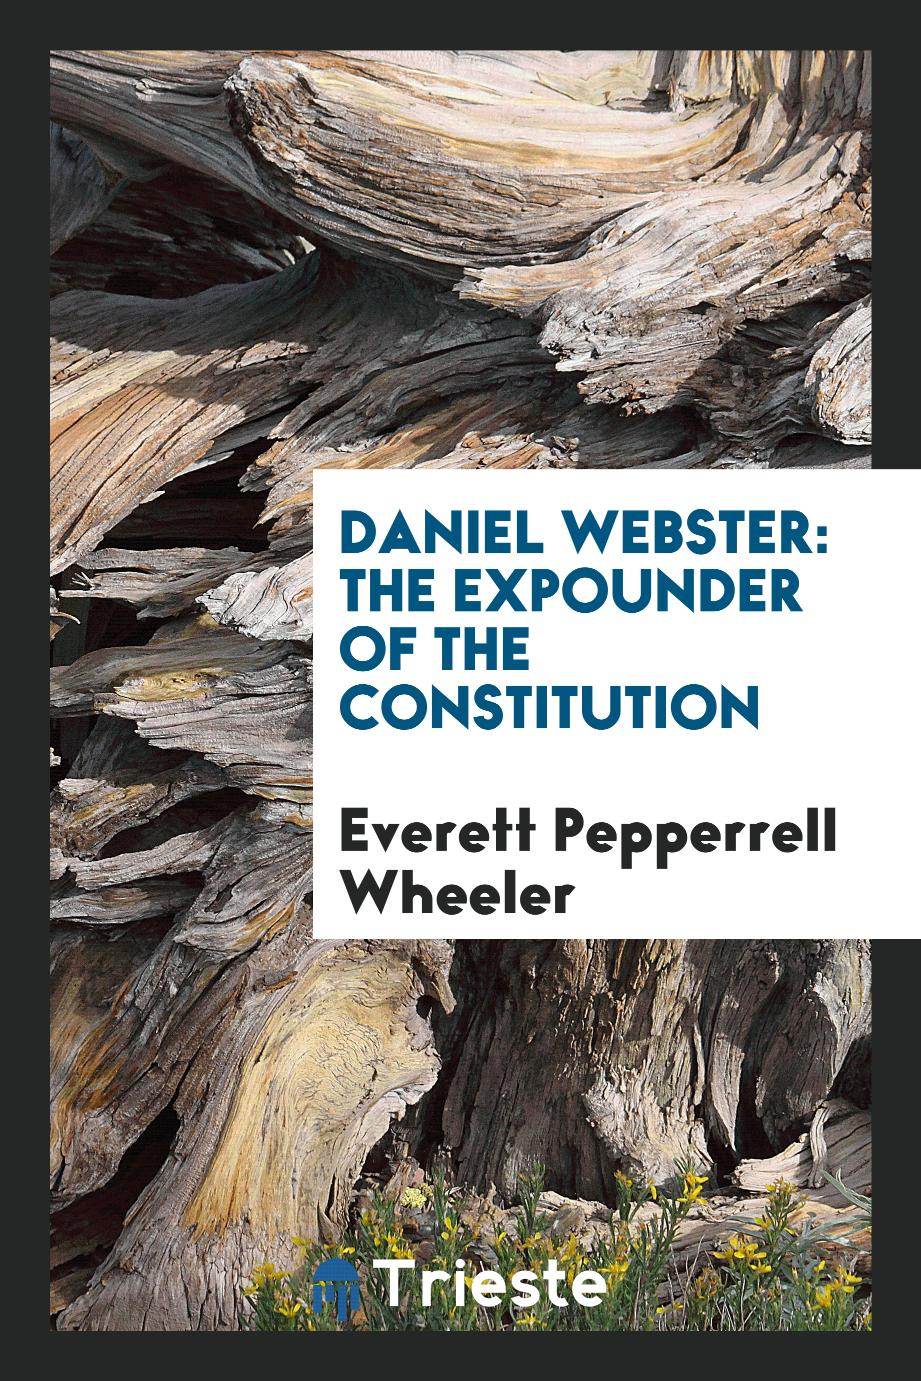 Daniel Webster: The Expounder of the Constitution